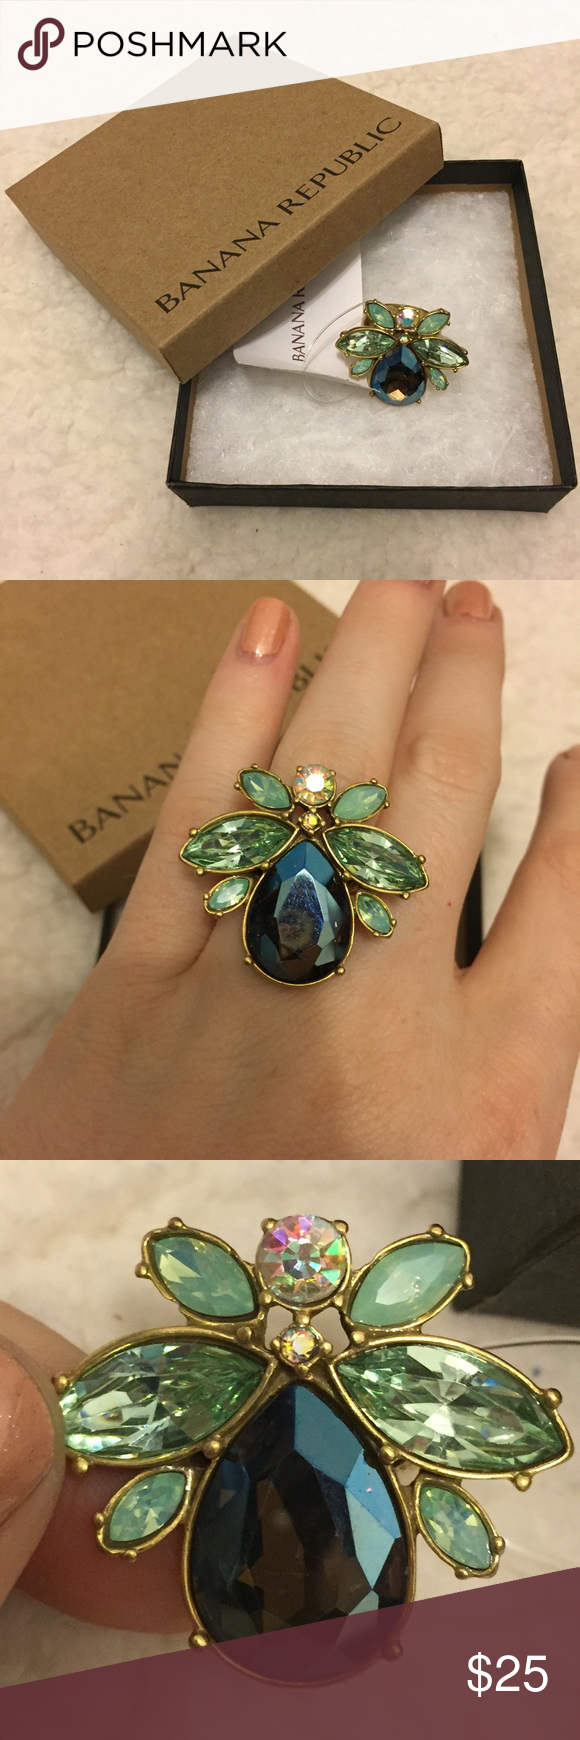 Banana Republic Jeweled Bug Ring! Gorgeous oversized ring! Multi colored stones! Size 6. Trendy for spring! Brand new with tags! No holds or trades. Final price unless bundled! I only sell on posh :) IN700# Banana Republic Jewelry Rings